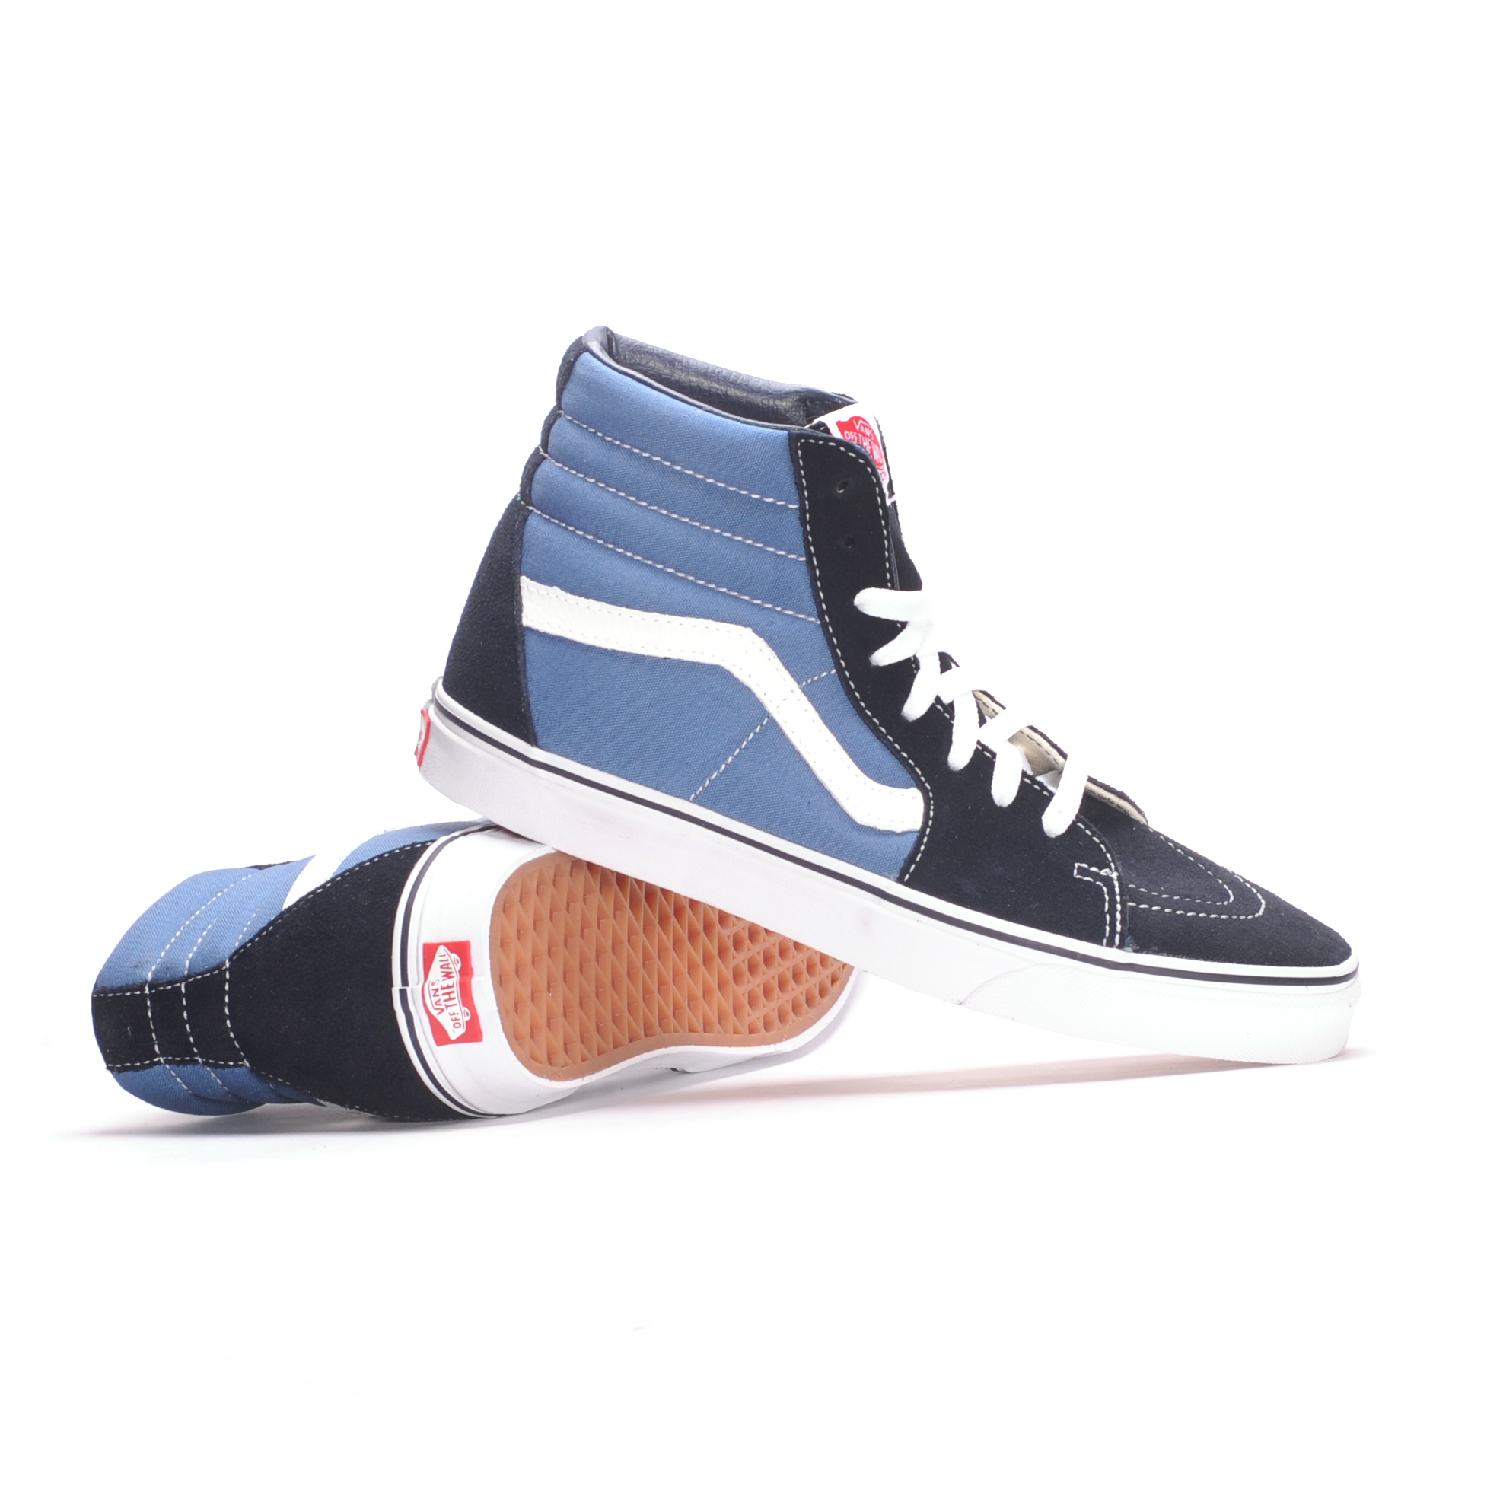 vans sk8 hi navy men 39 s skate shoes. Black Bedroom Furniture Sets. Home Design Ideas